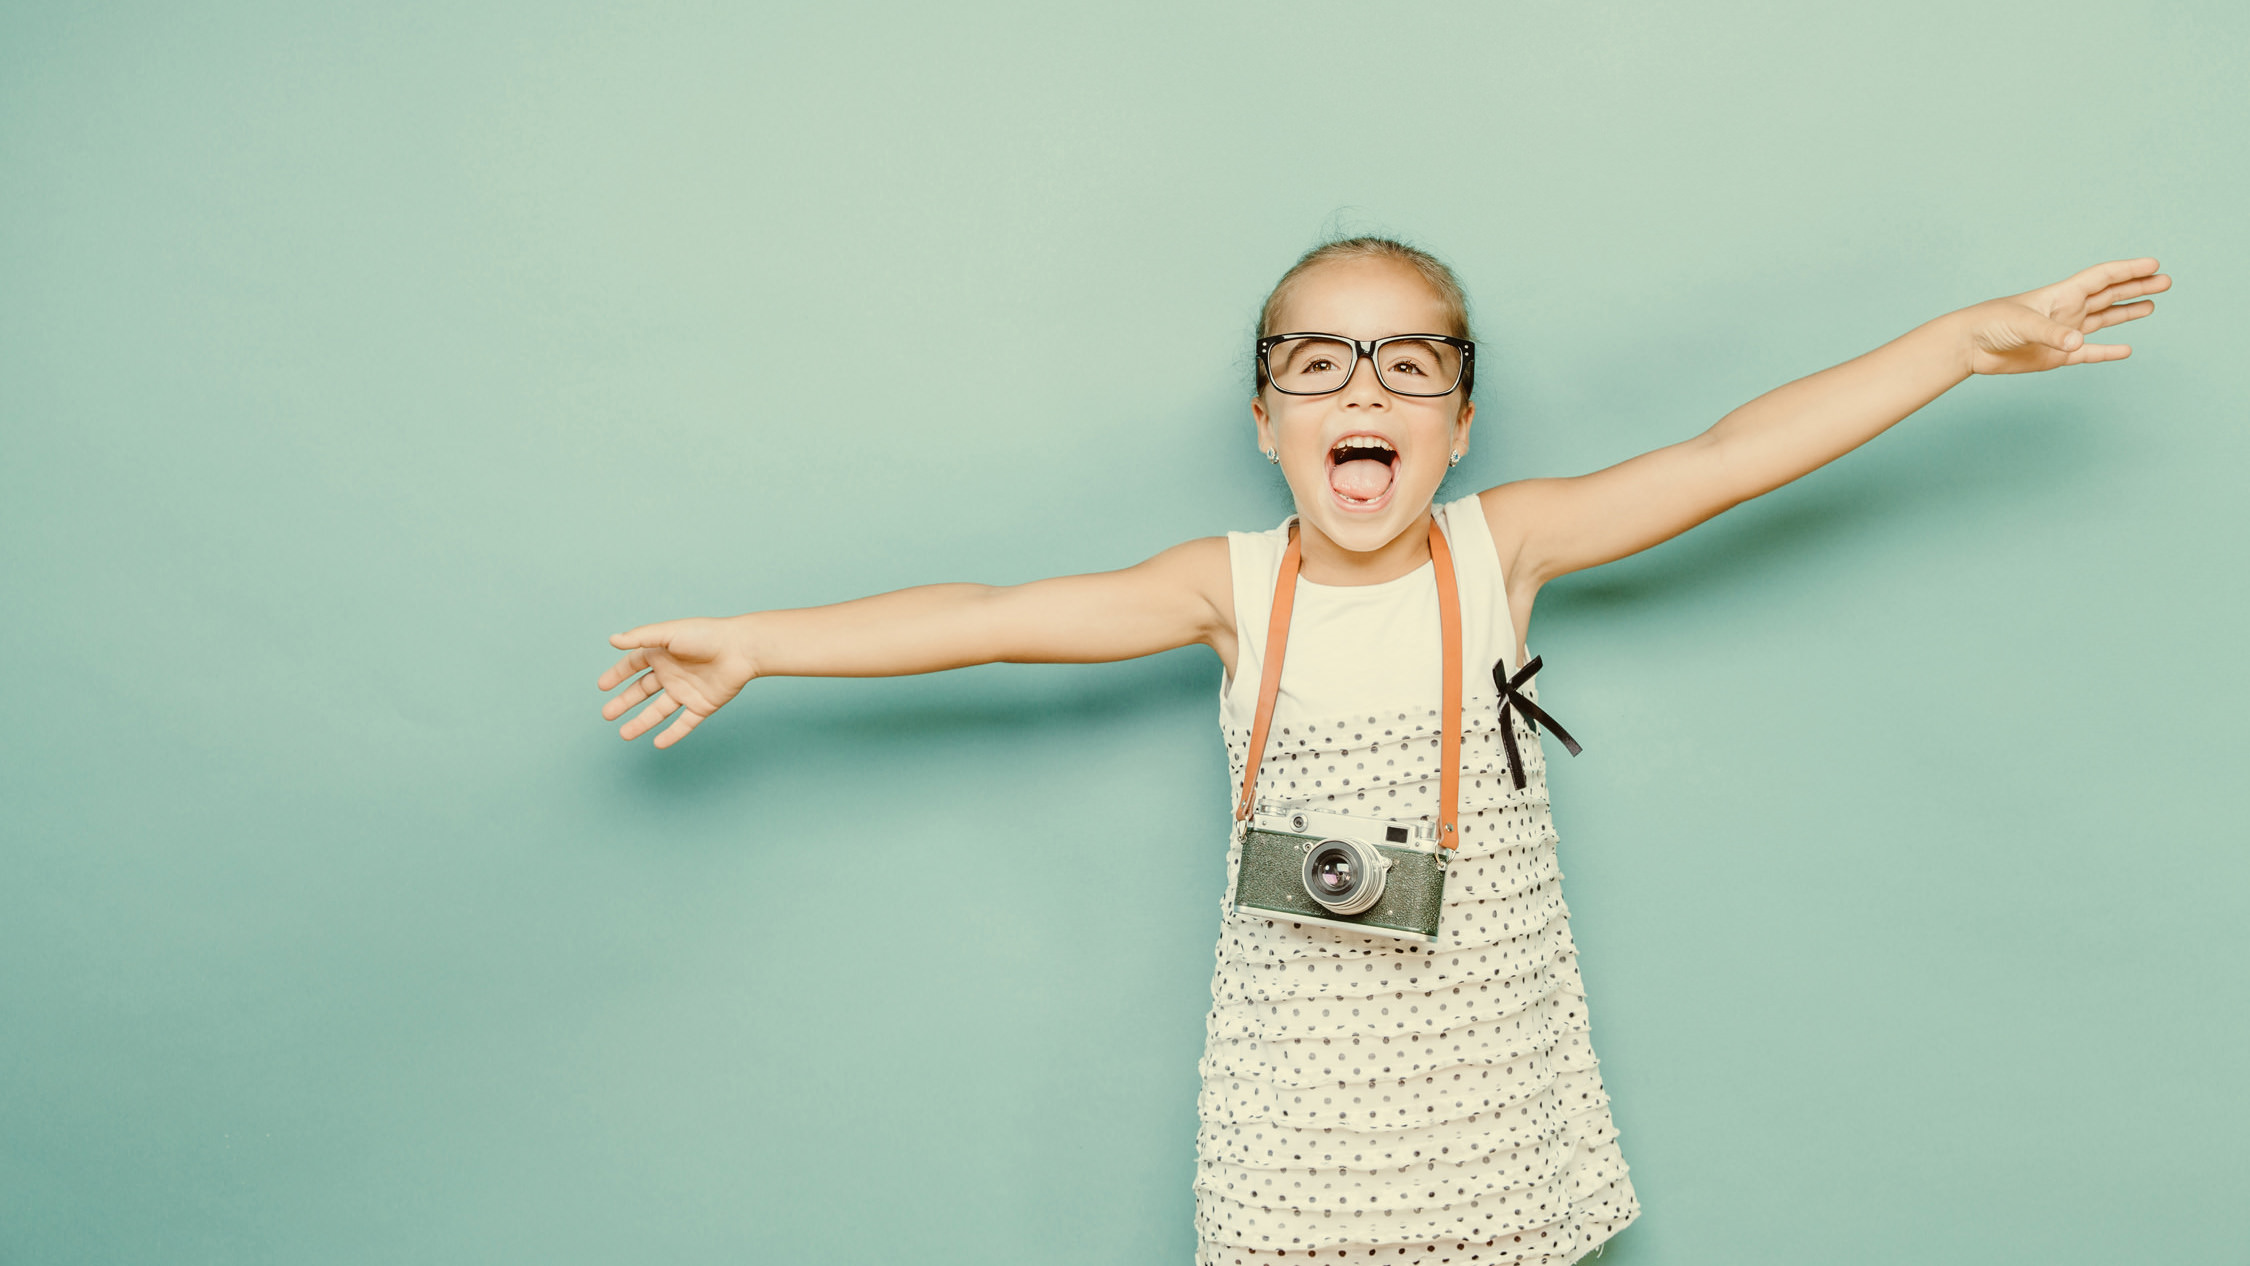 Fun photography courses for beginners to advanced. Based in Bath and the South West.